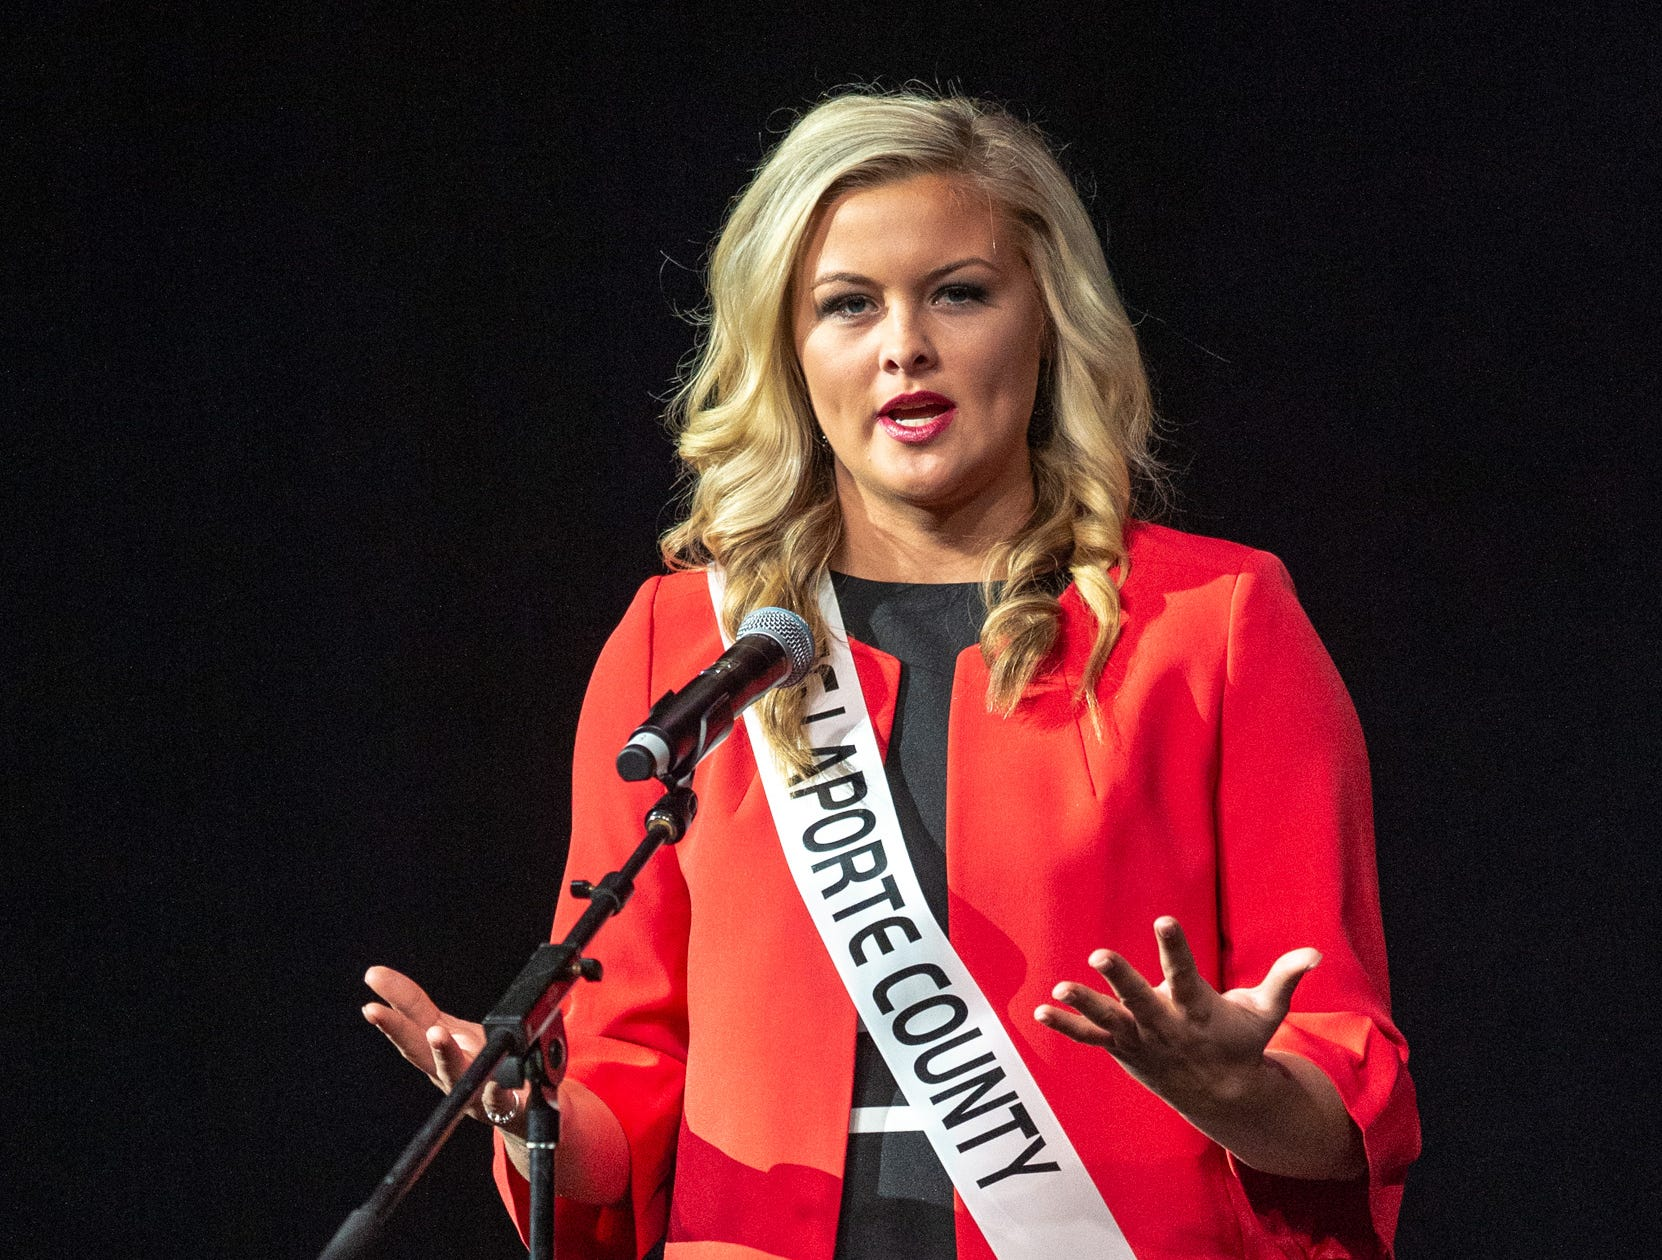 Miss LaPorte County, Janelle Mitzner, during the 61st Indiana State Fair Queen Pageant at the Indiana State Fairgrounds in Indianapolis on Sunday, Jan. 6, 2019.